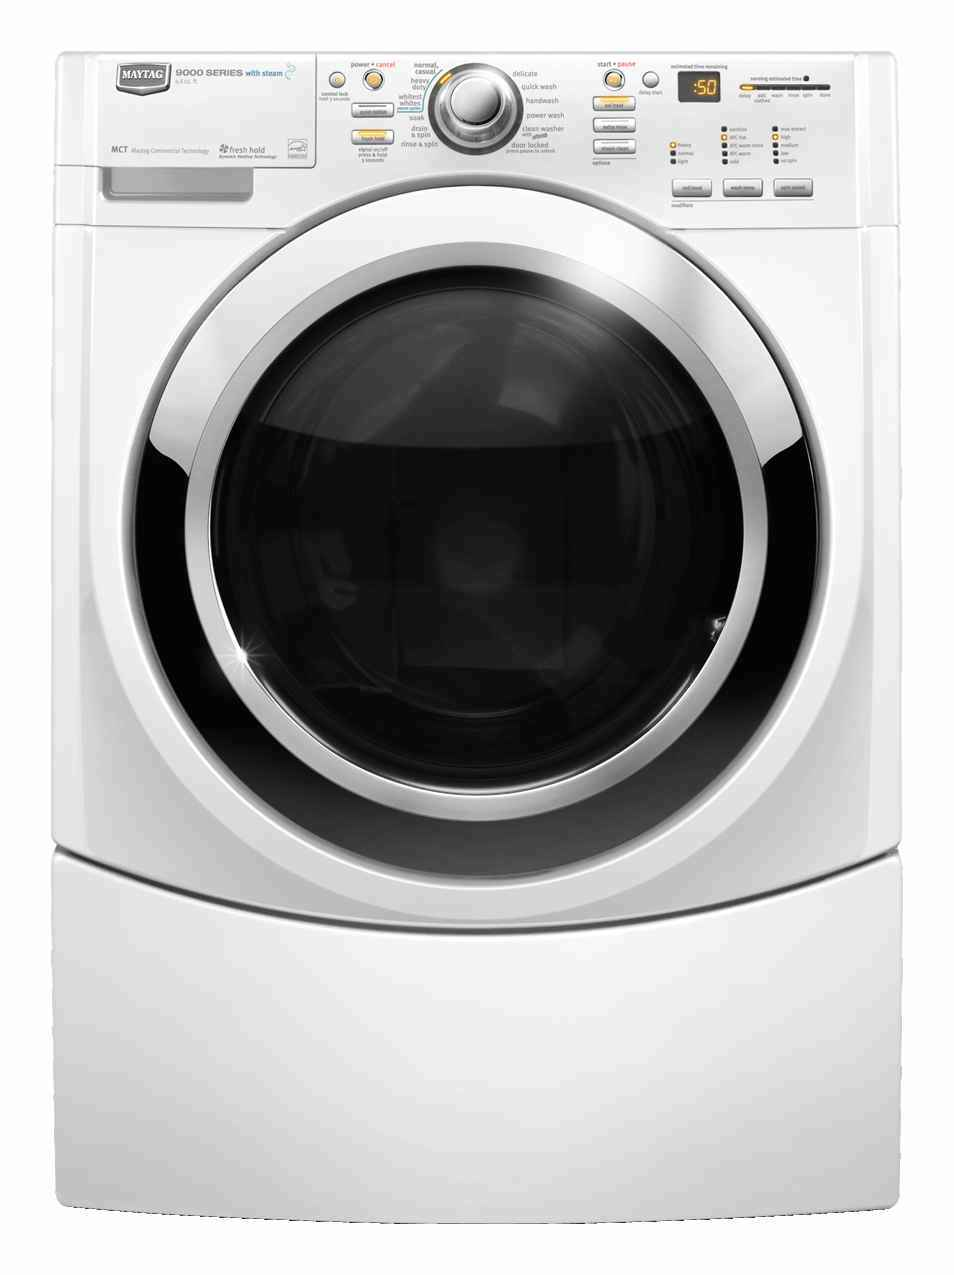 MHWE950WW washing machine